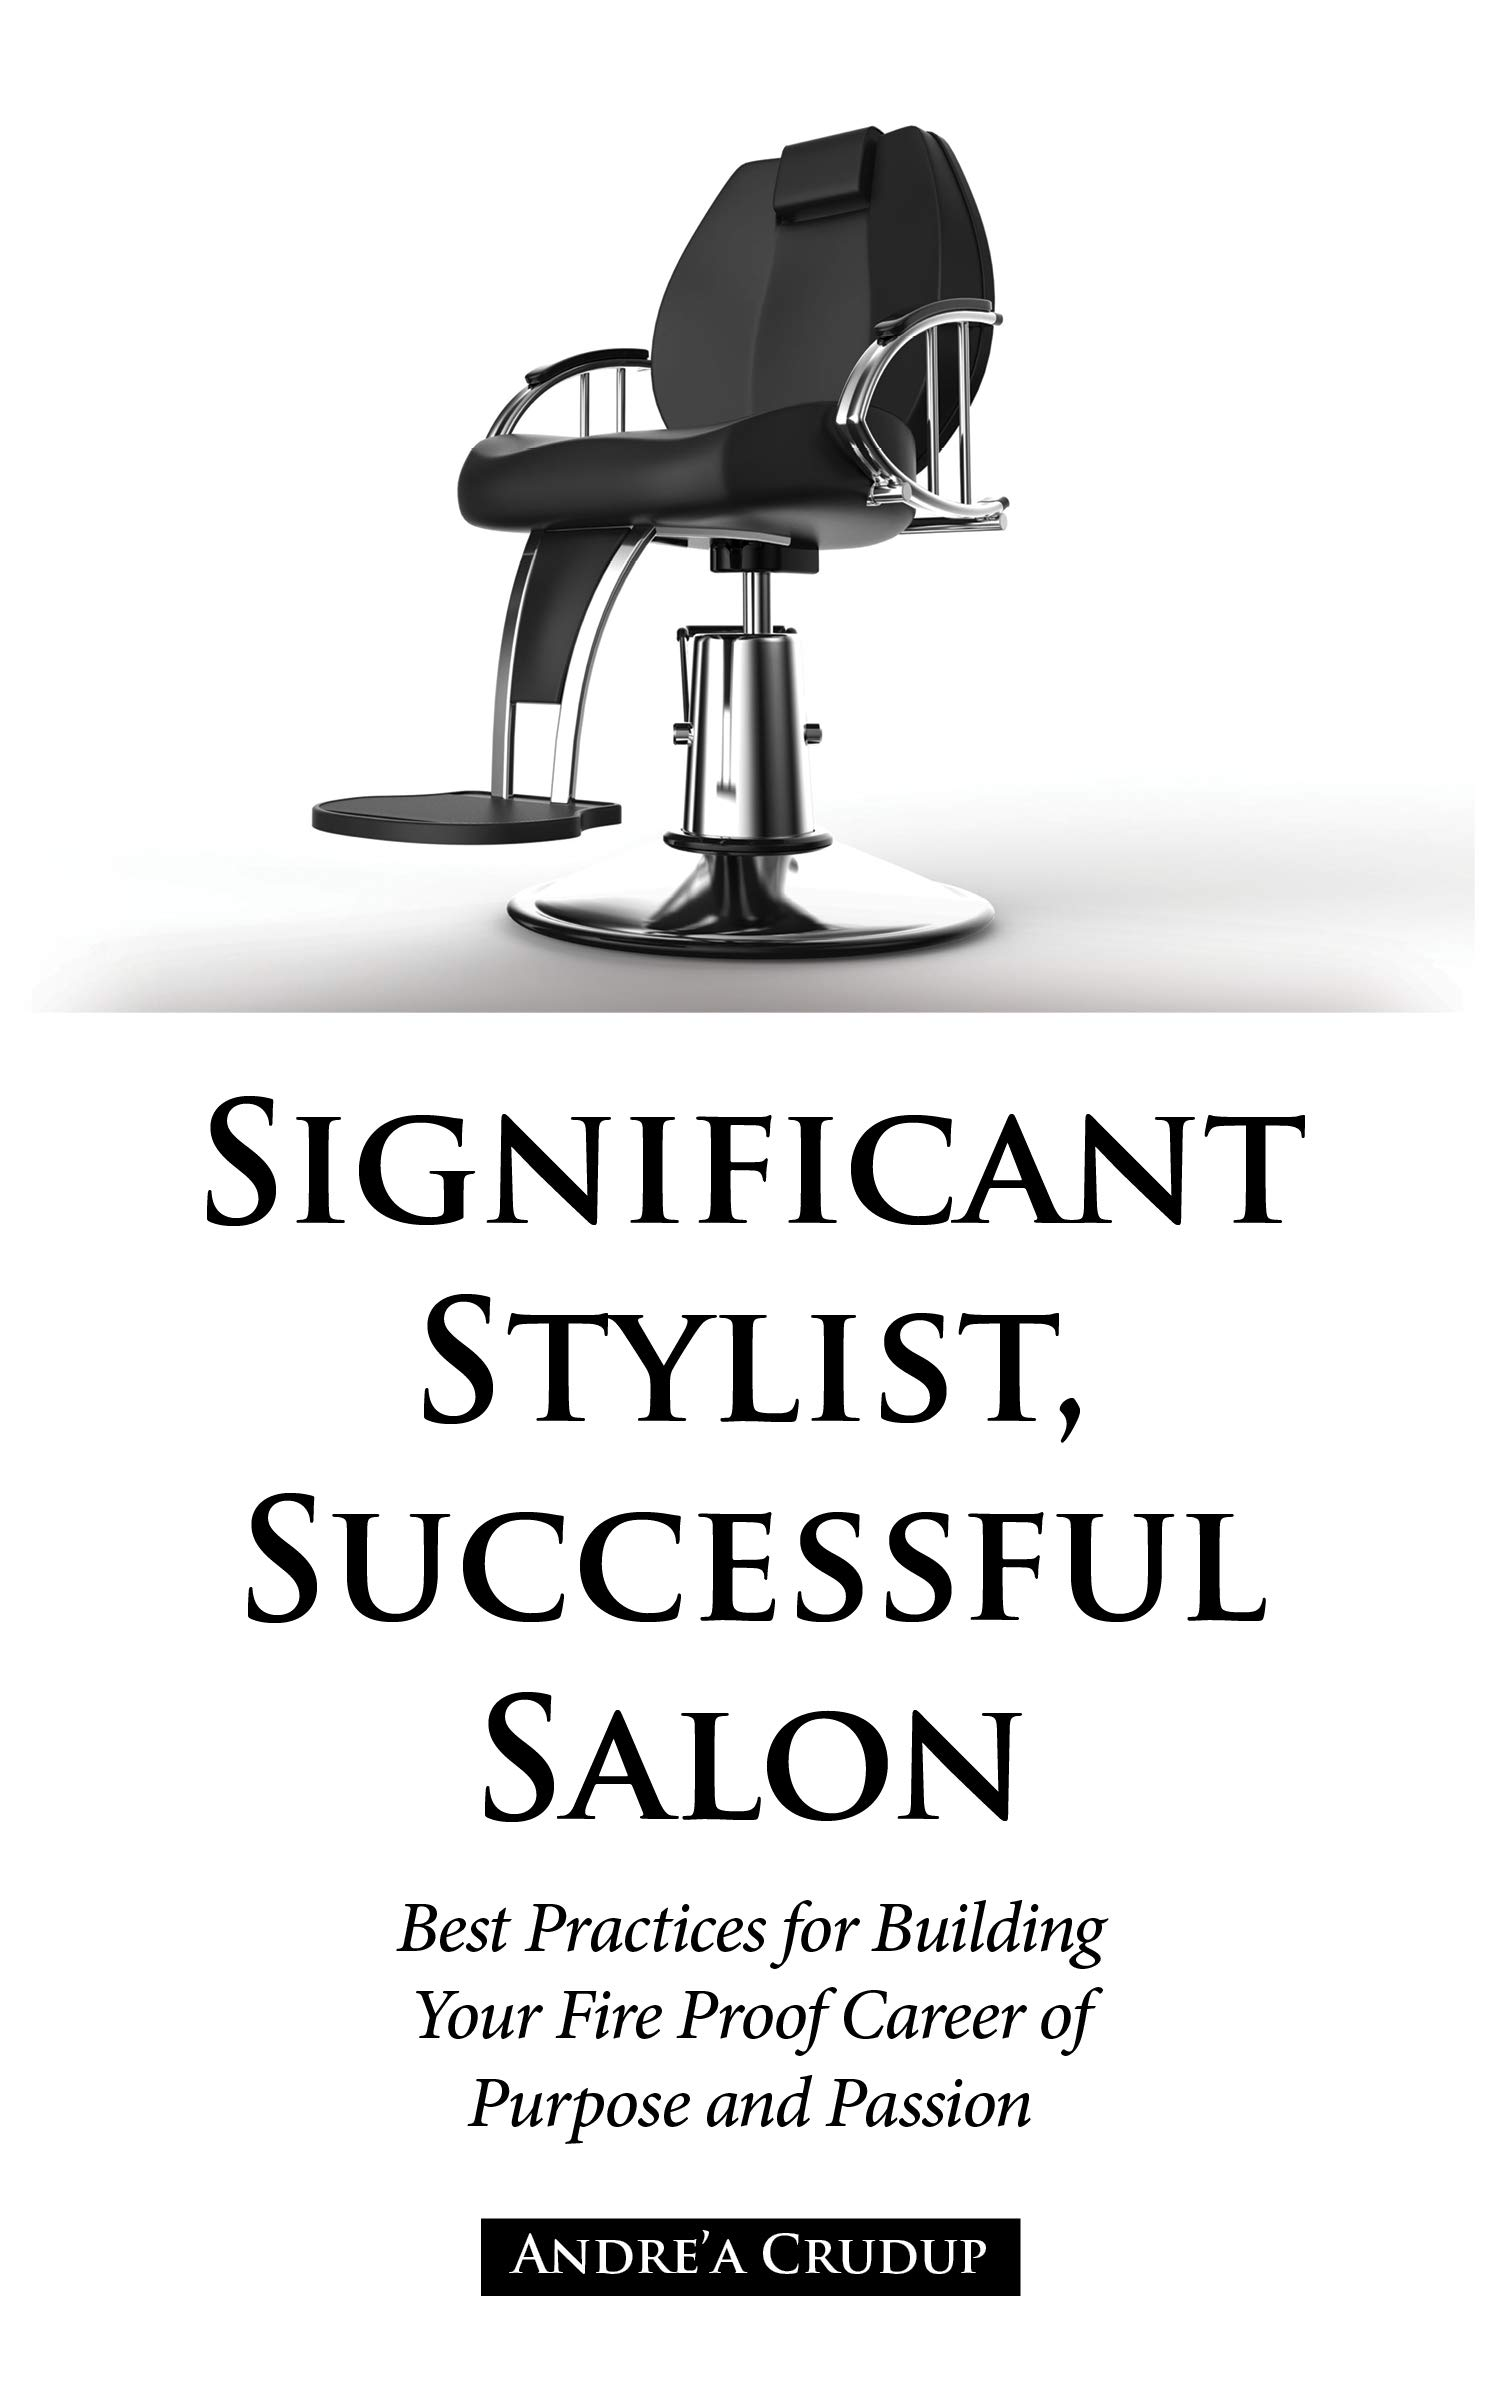 Significant Stylist, Successful Salon: Best Practices for Building Your Fire Proof Career of Purpose and Passion